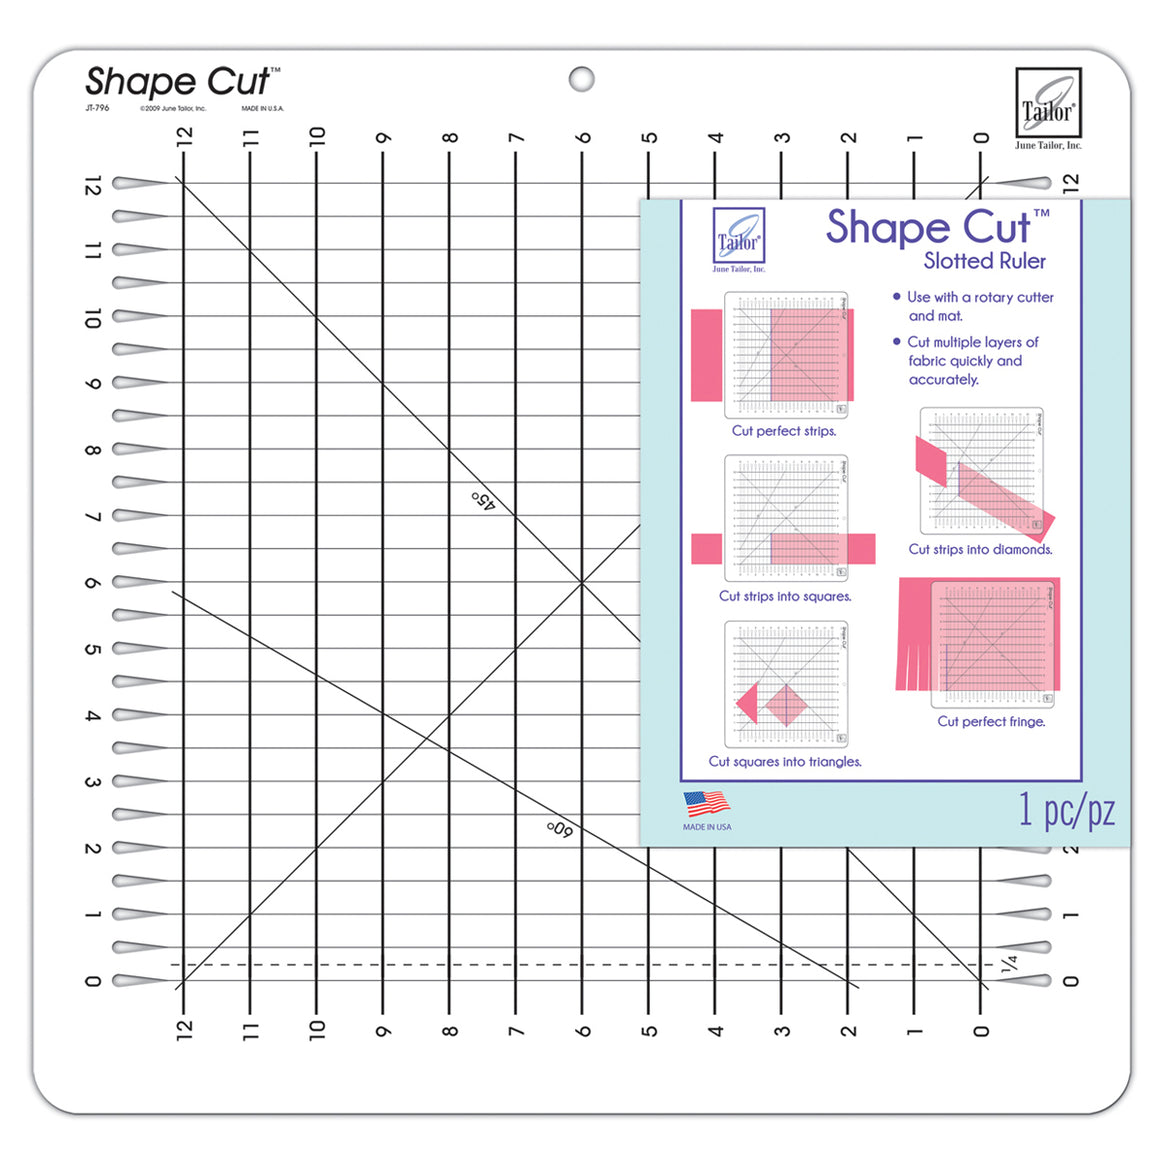 Shape Cut™